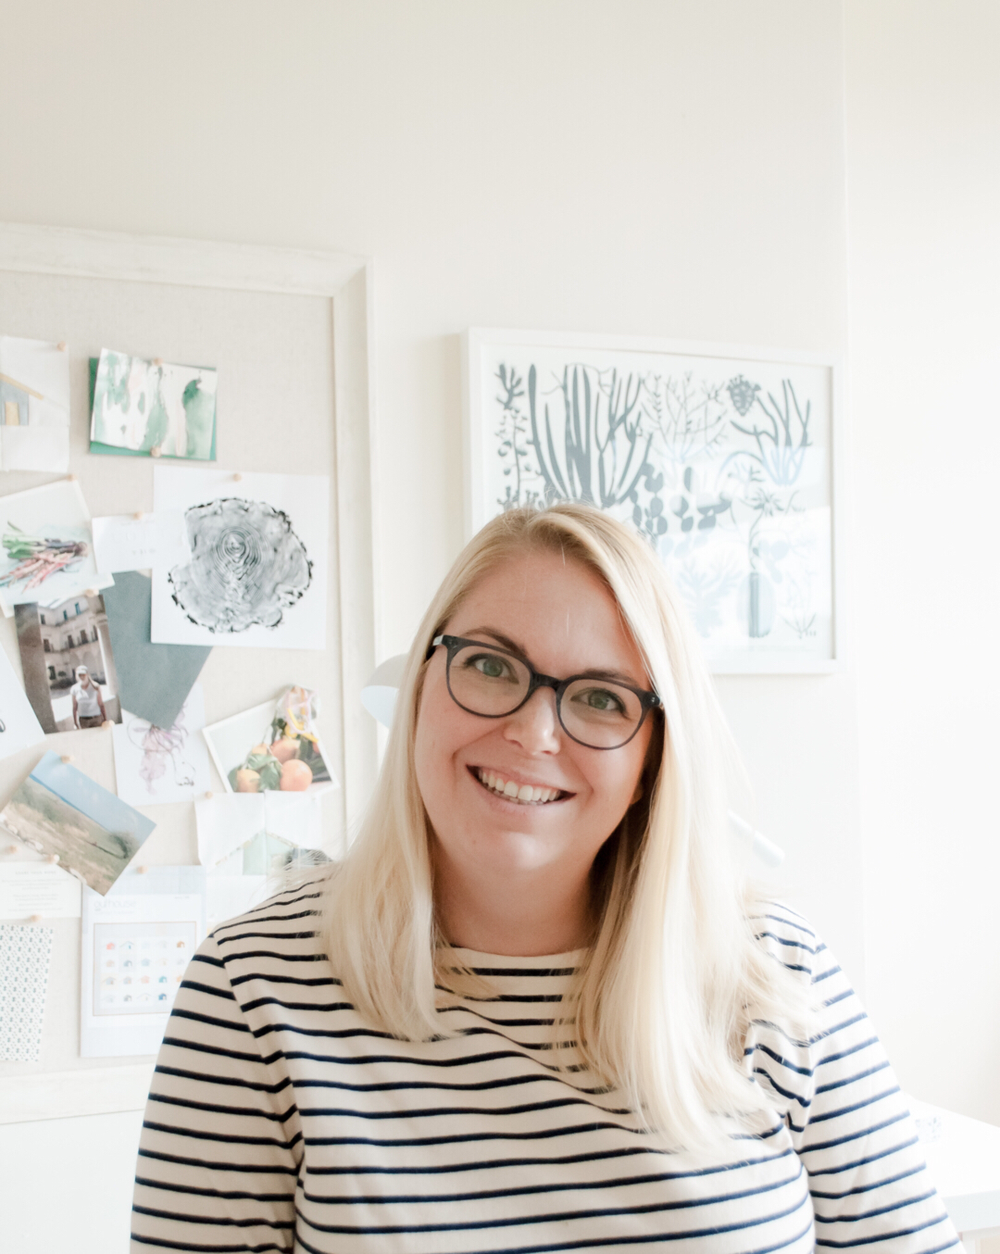 About the Studio   - Welcome! I'm a brand designer and Squarespace designer who crafts intentionally dynamic brands for professional entrepreneurs and creatives. Read the Lifetsyle Blog